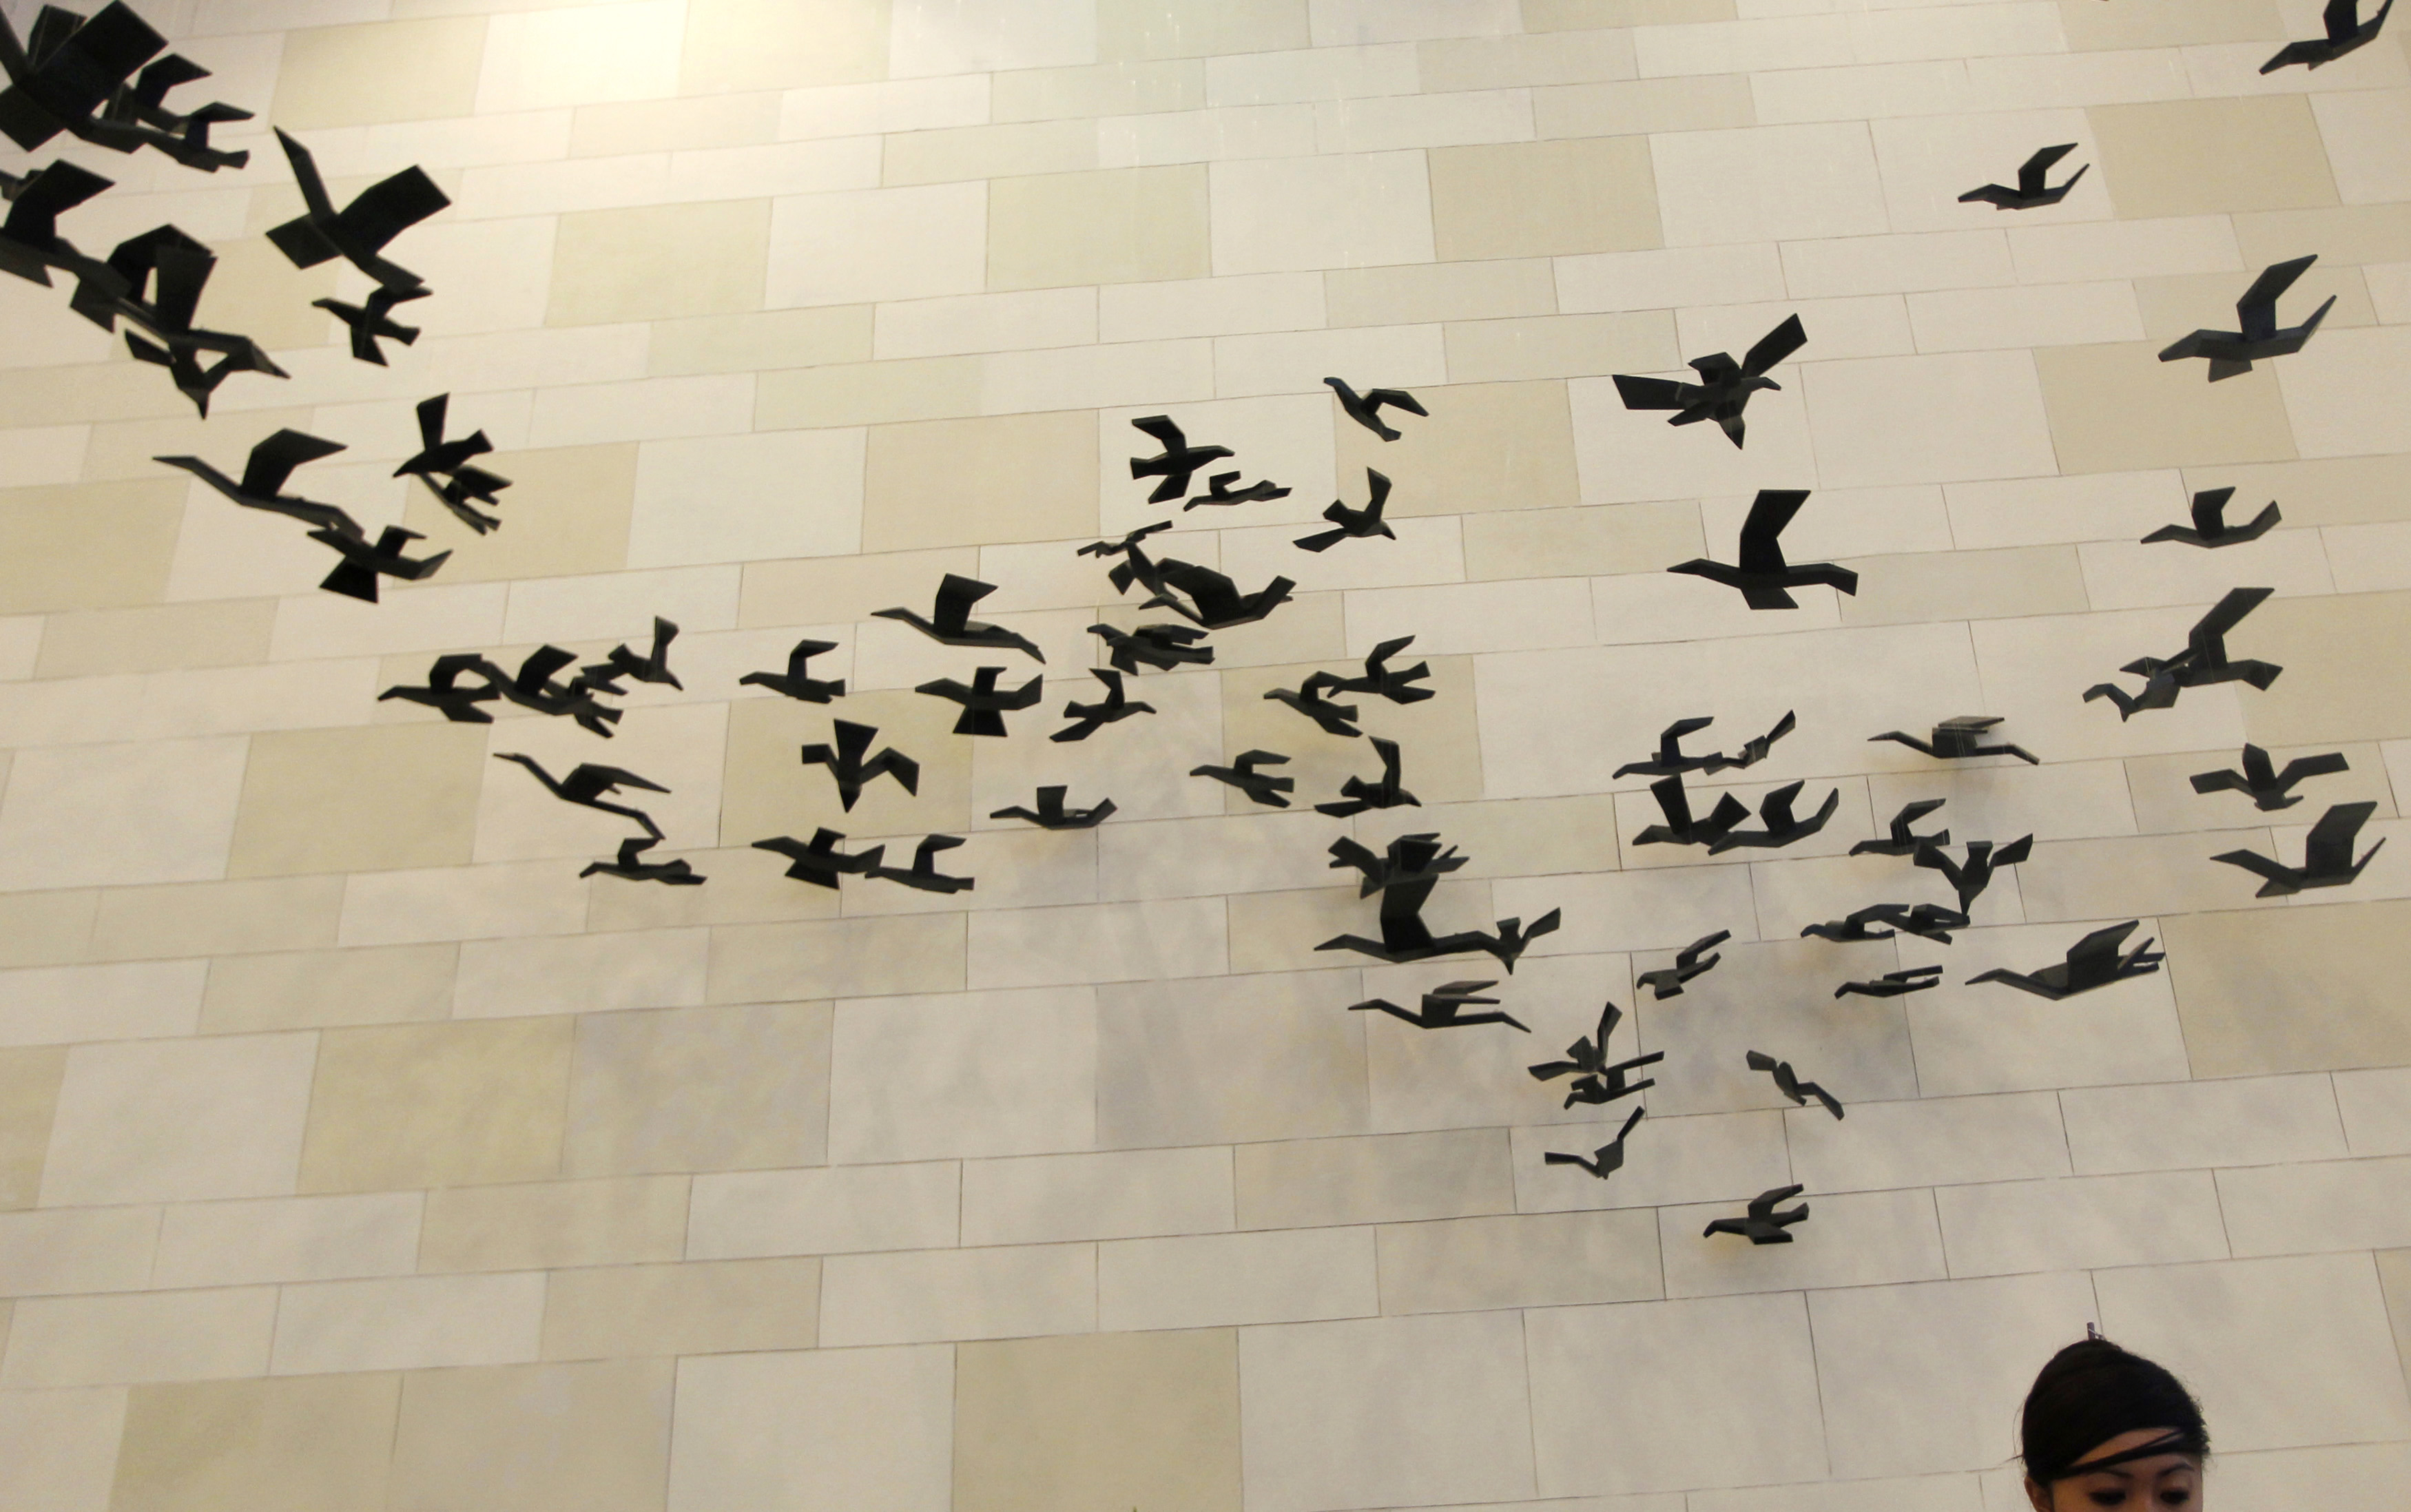 An art installation of suspended doves hangs above a receptionist at the media center of the Asia-Pacific Economic Cooperation (APEC) forum in Nusa Dua, Bali, October 5, 2013. REUTERS/Edgar Su (INDONESIA - Tags: SOCIETY MEDIA POLITICS BUSINESS) - RTR3FM9N